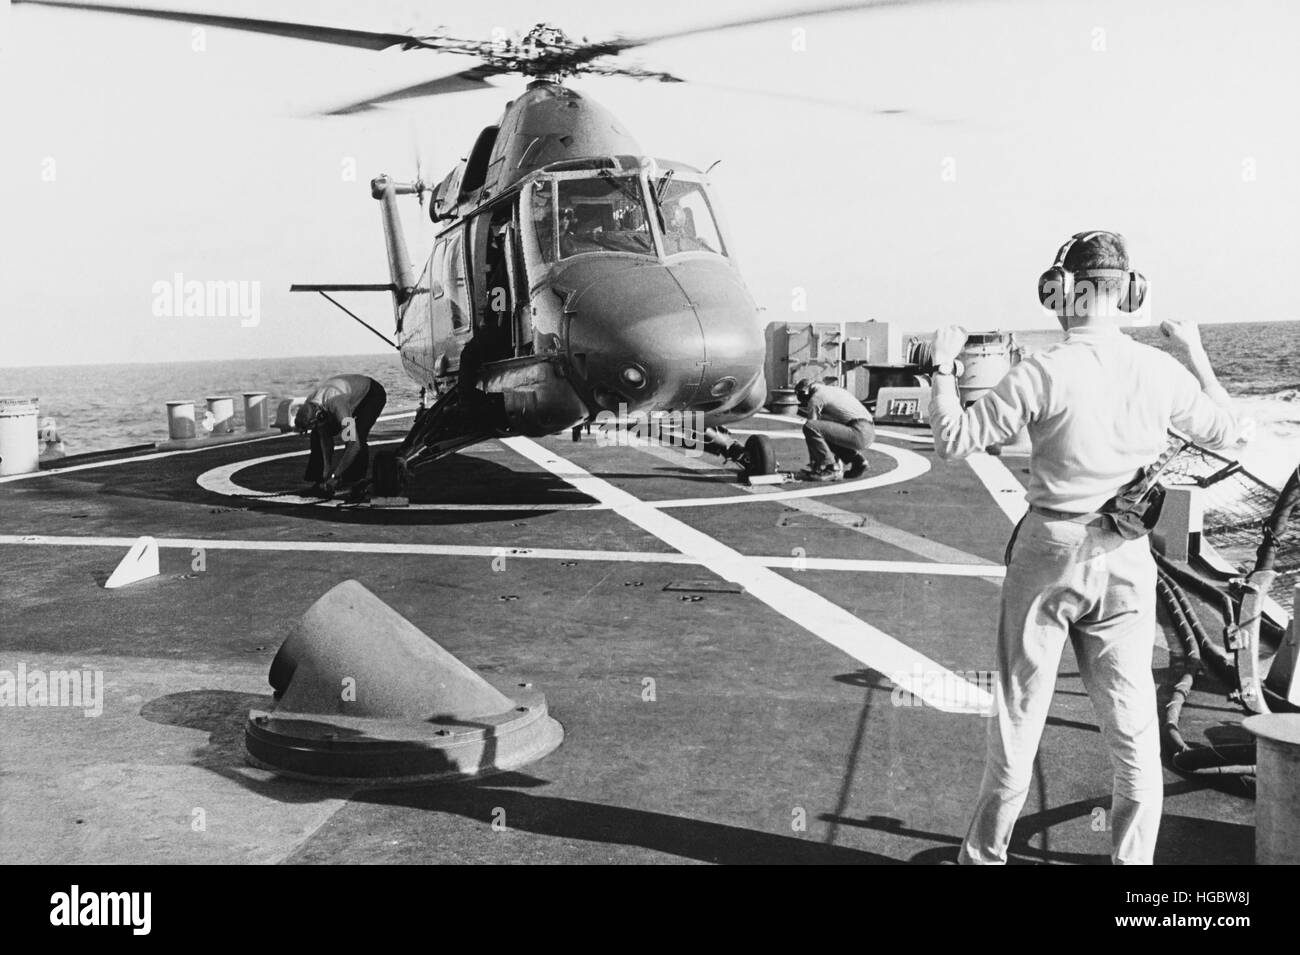 A UH-2 Seasprite helicopter lands aboard USS Coontz, 1969. - Stock Image